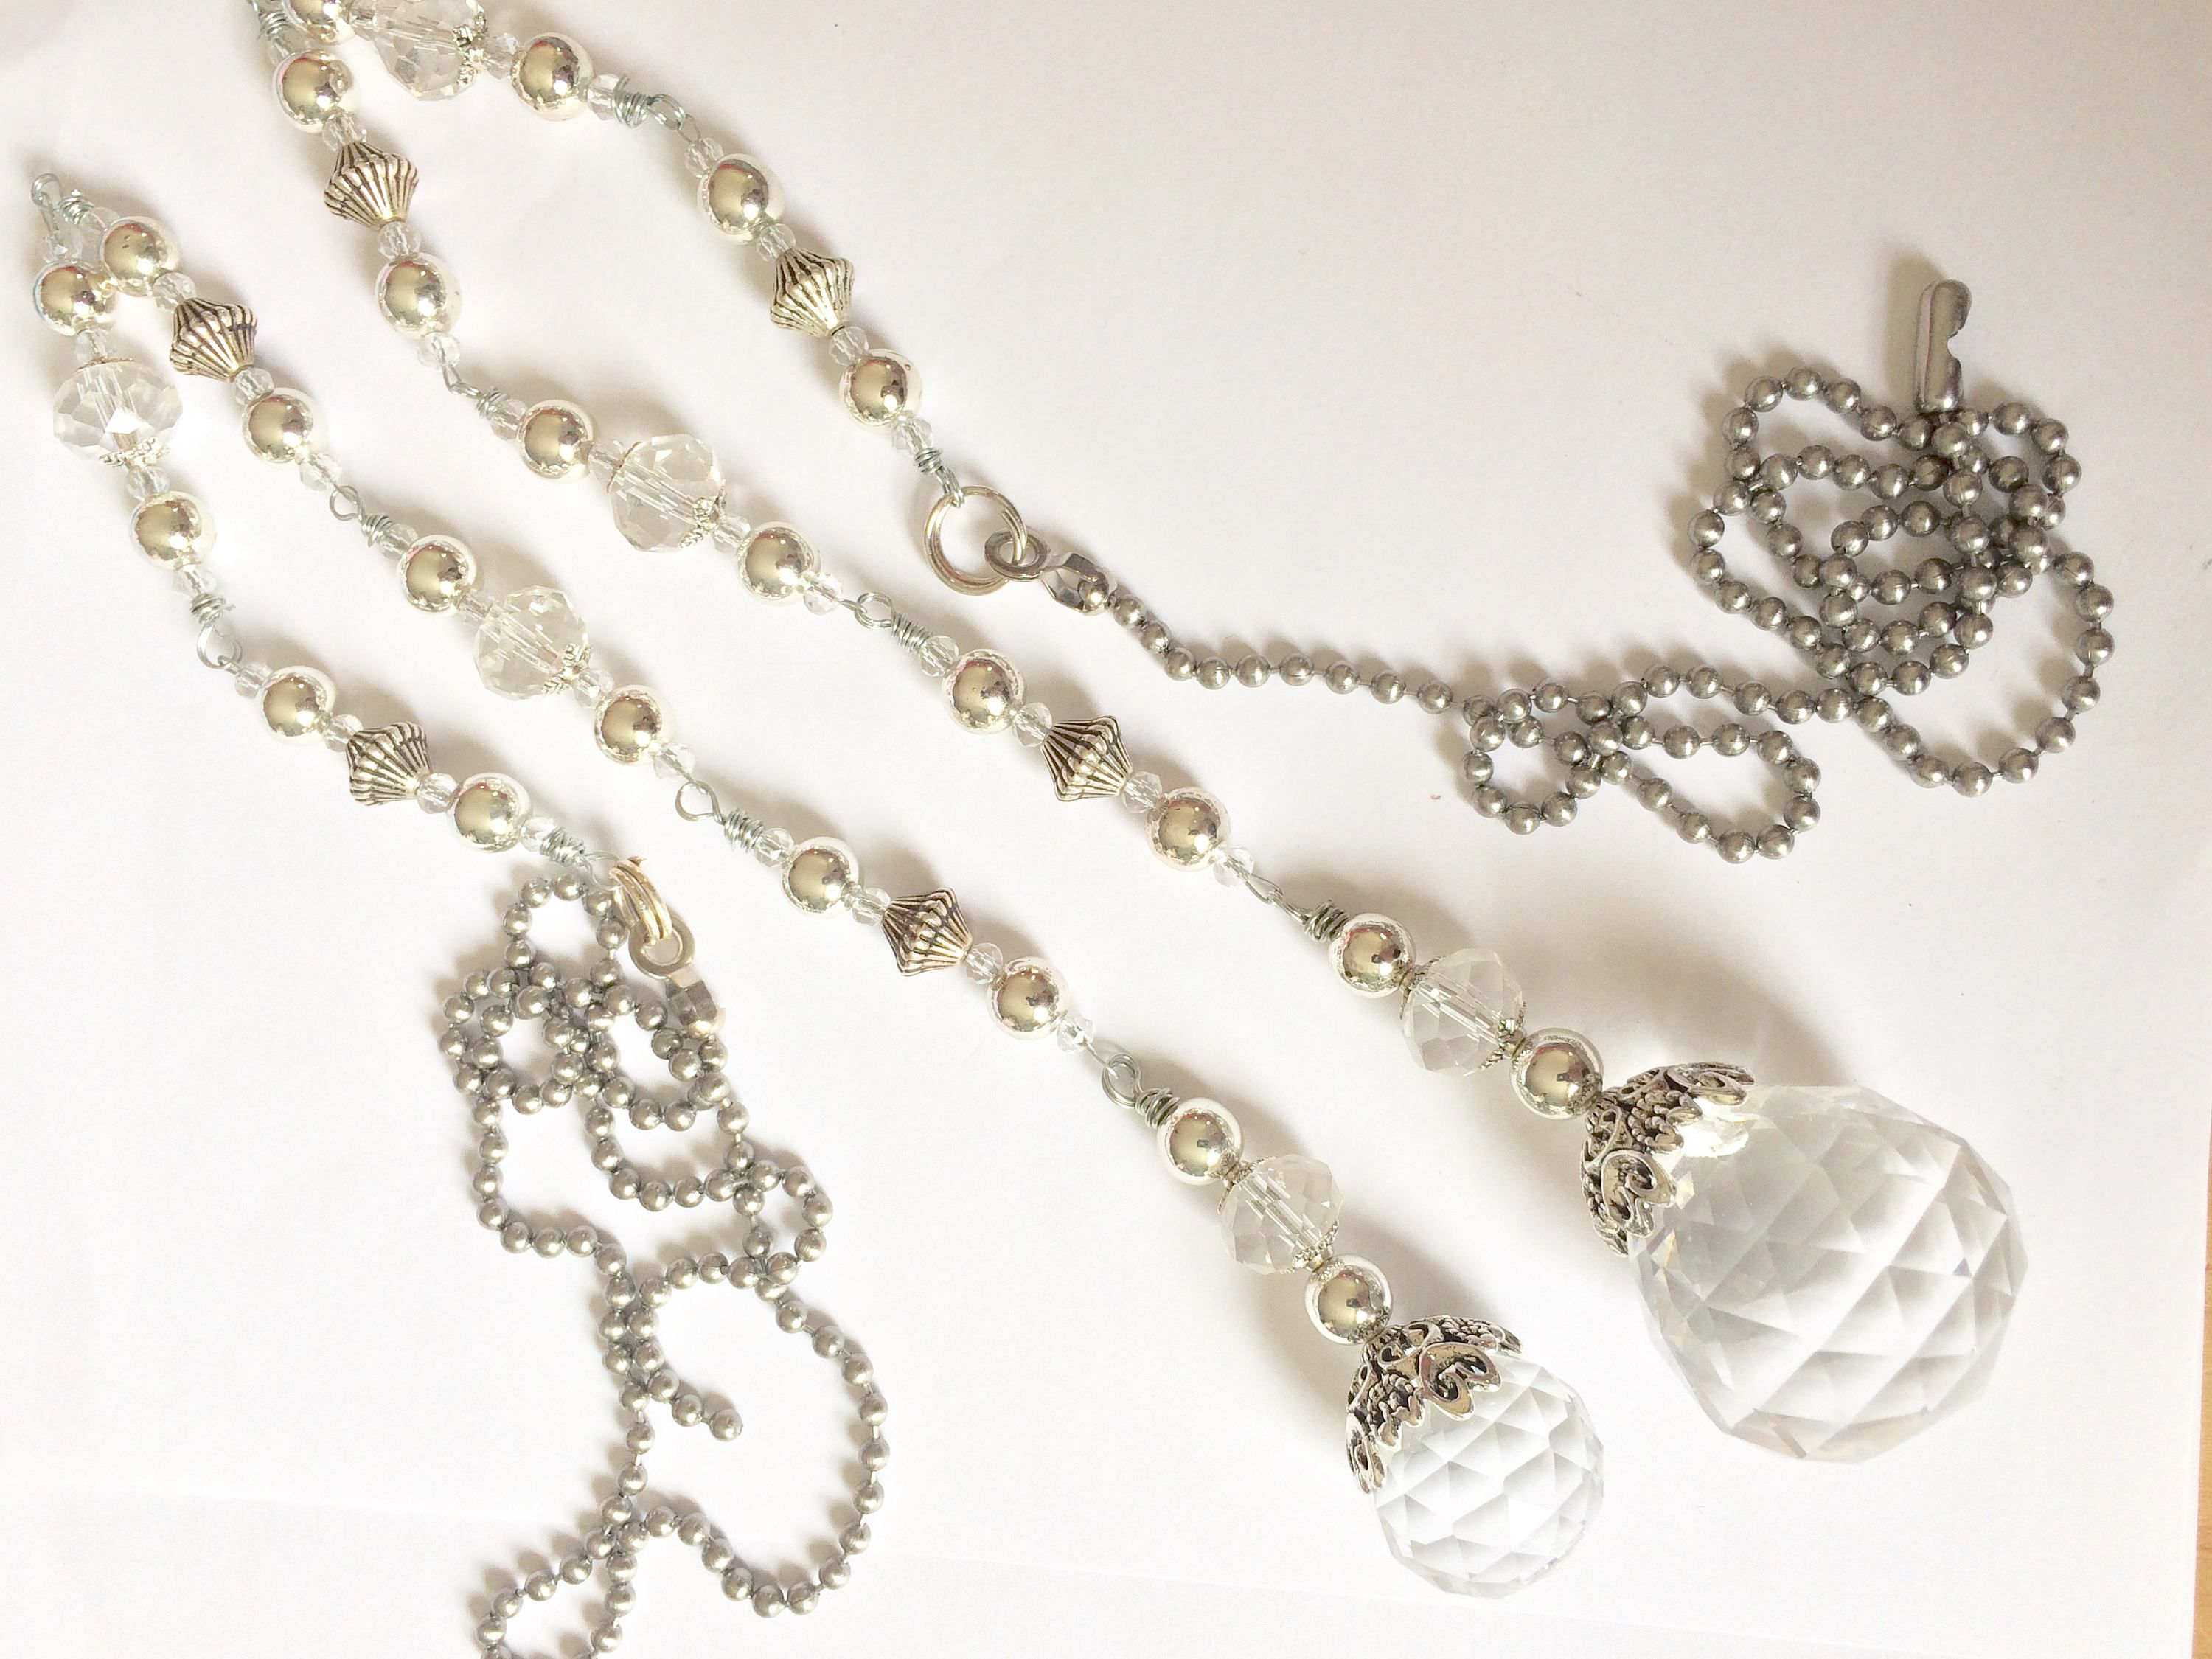 jewelry with chains chain pendant ball beautiful side myshoplah layer multi necklace antique